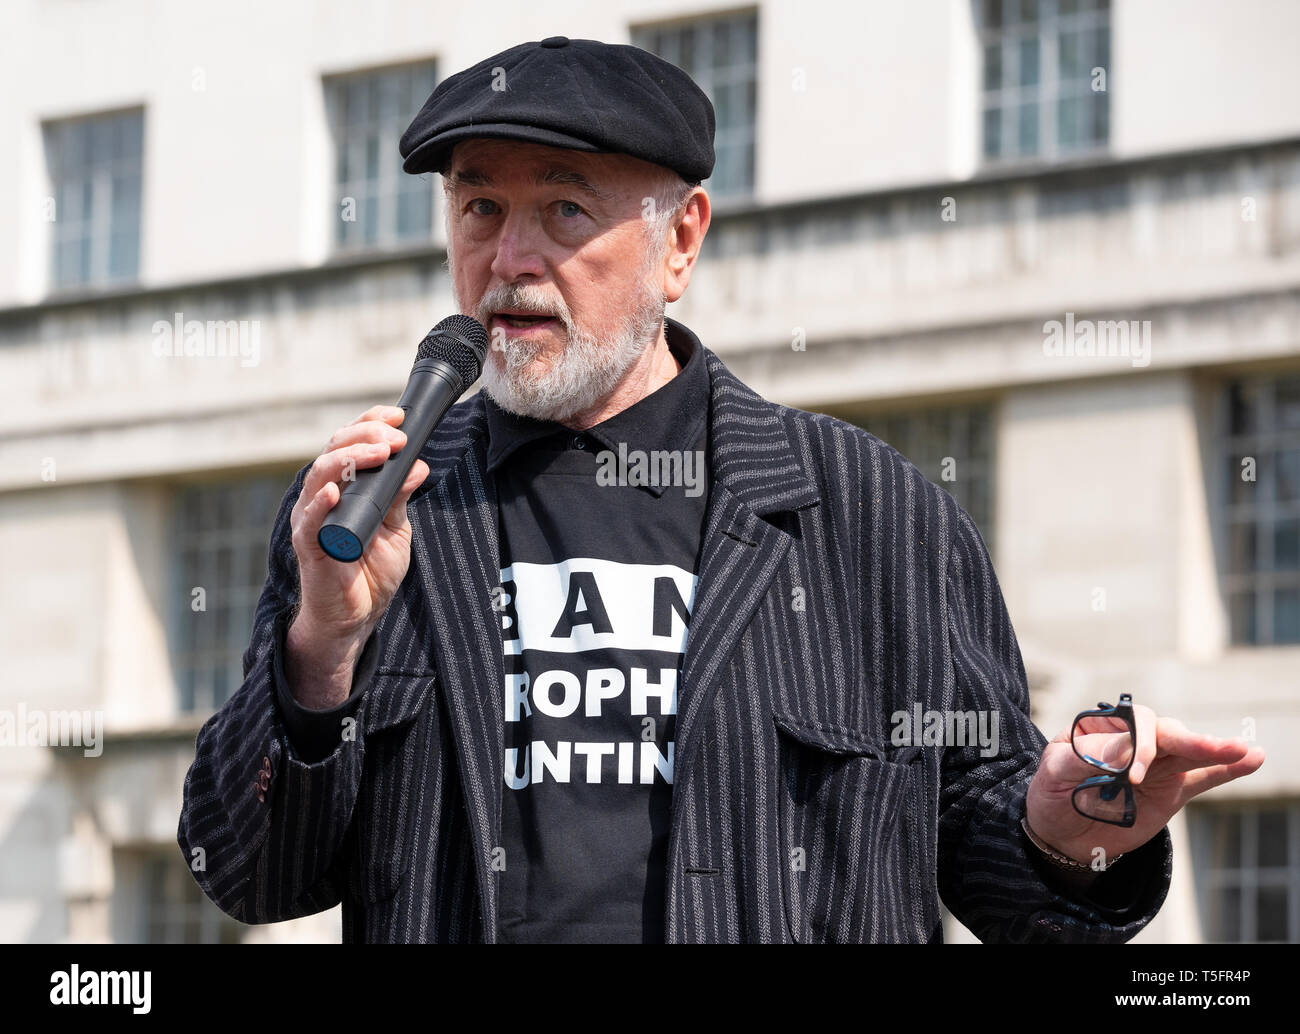 Peter Egan speaking at the London march against trophy hunting and extinction rally at Richmond Terrace, opposite Downing Street, London. Stock Photo